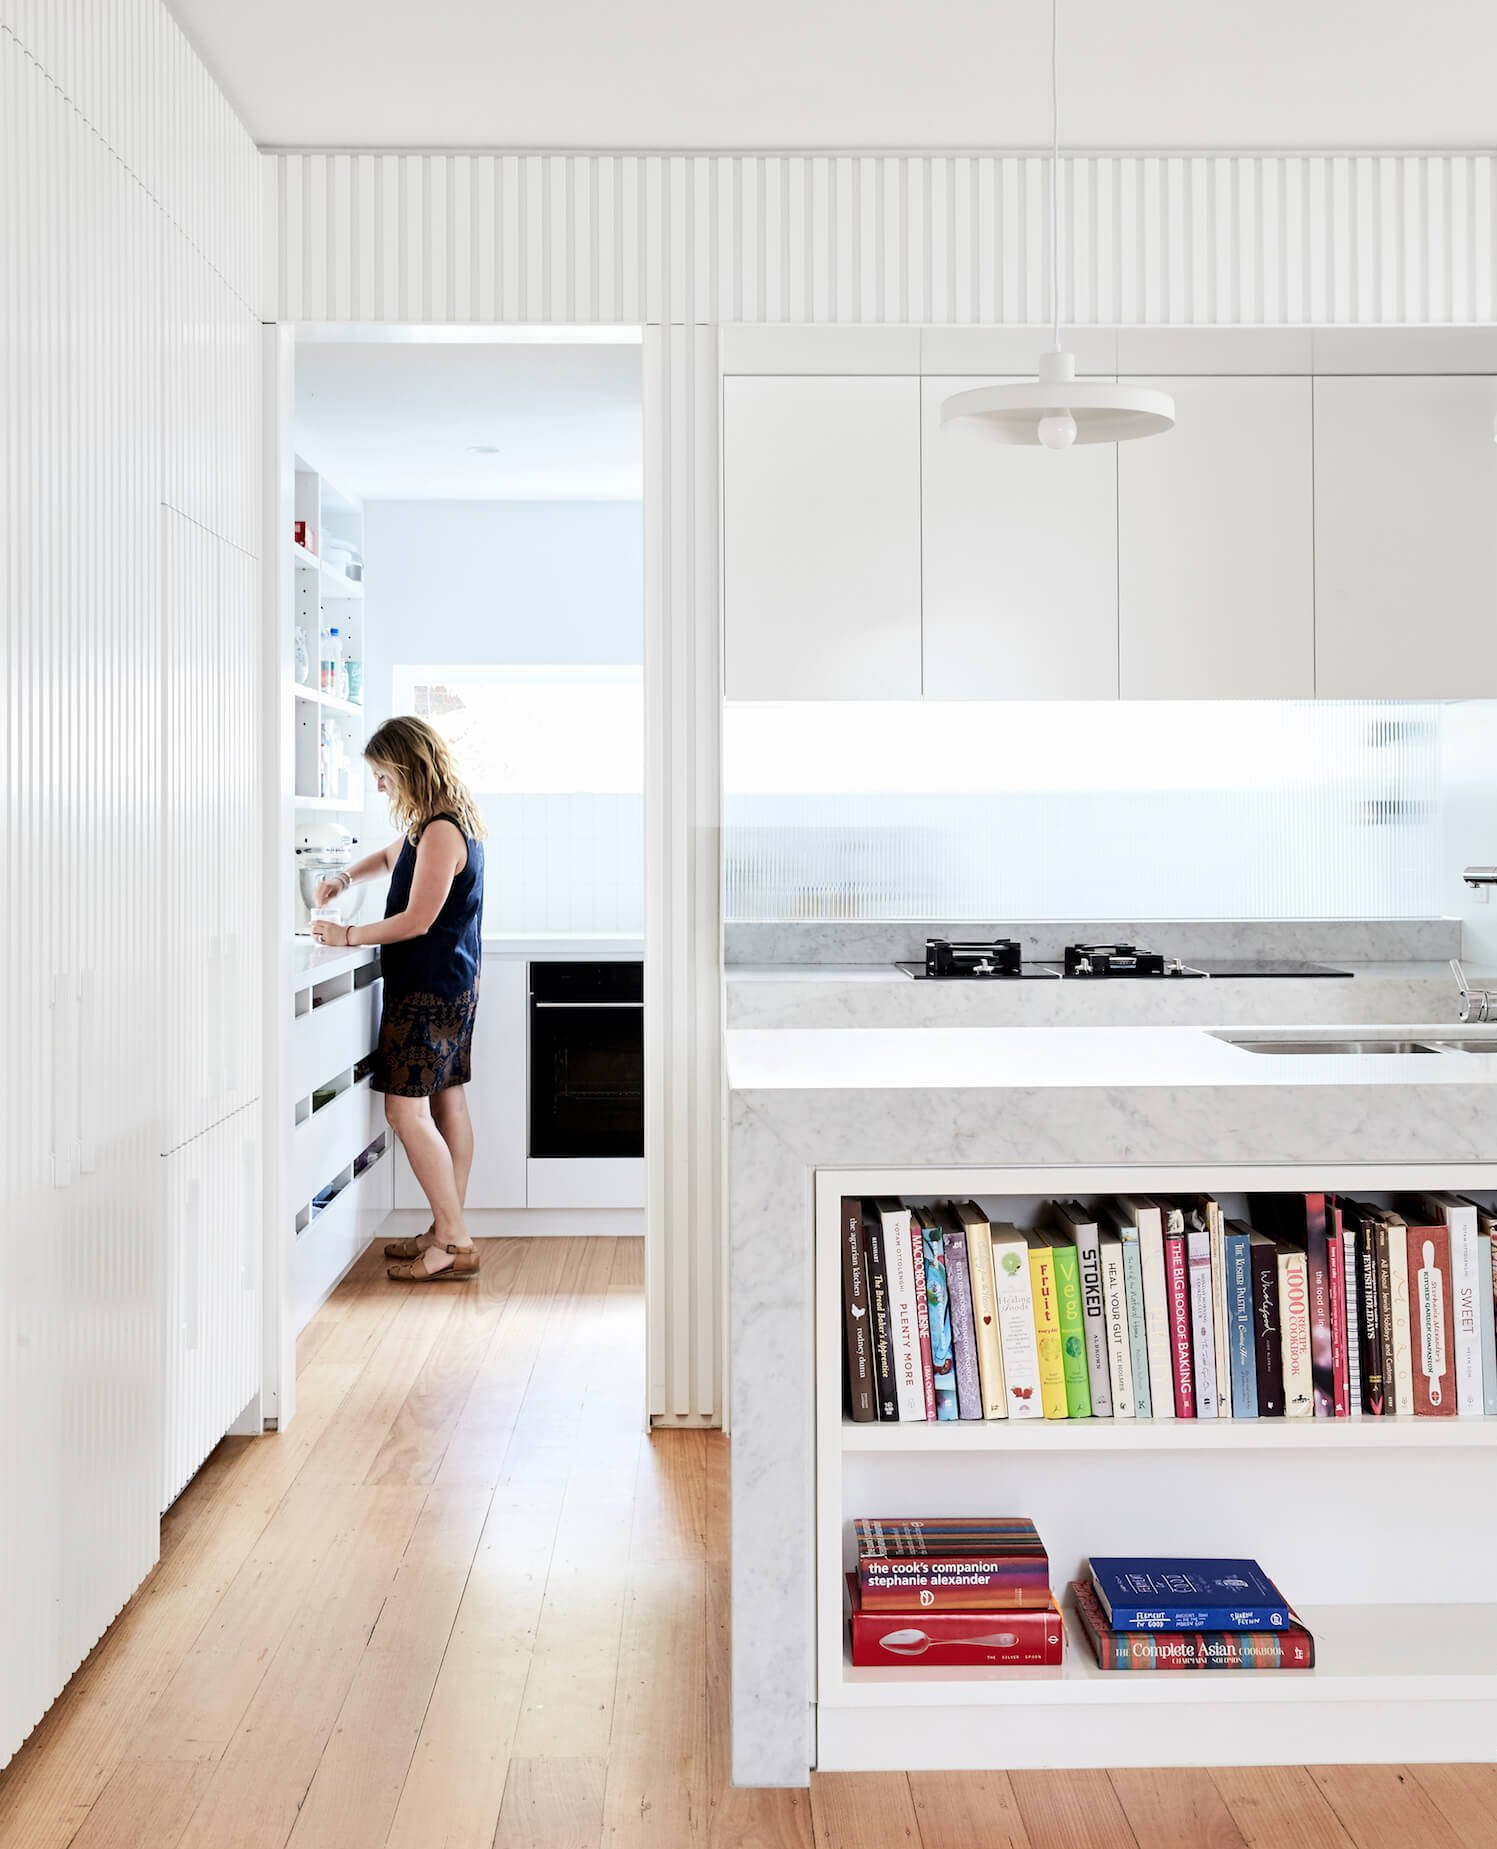 est living australian interiors Architecture Design Holroyd 10 kitchen4 e1530583746822